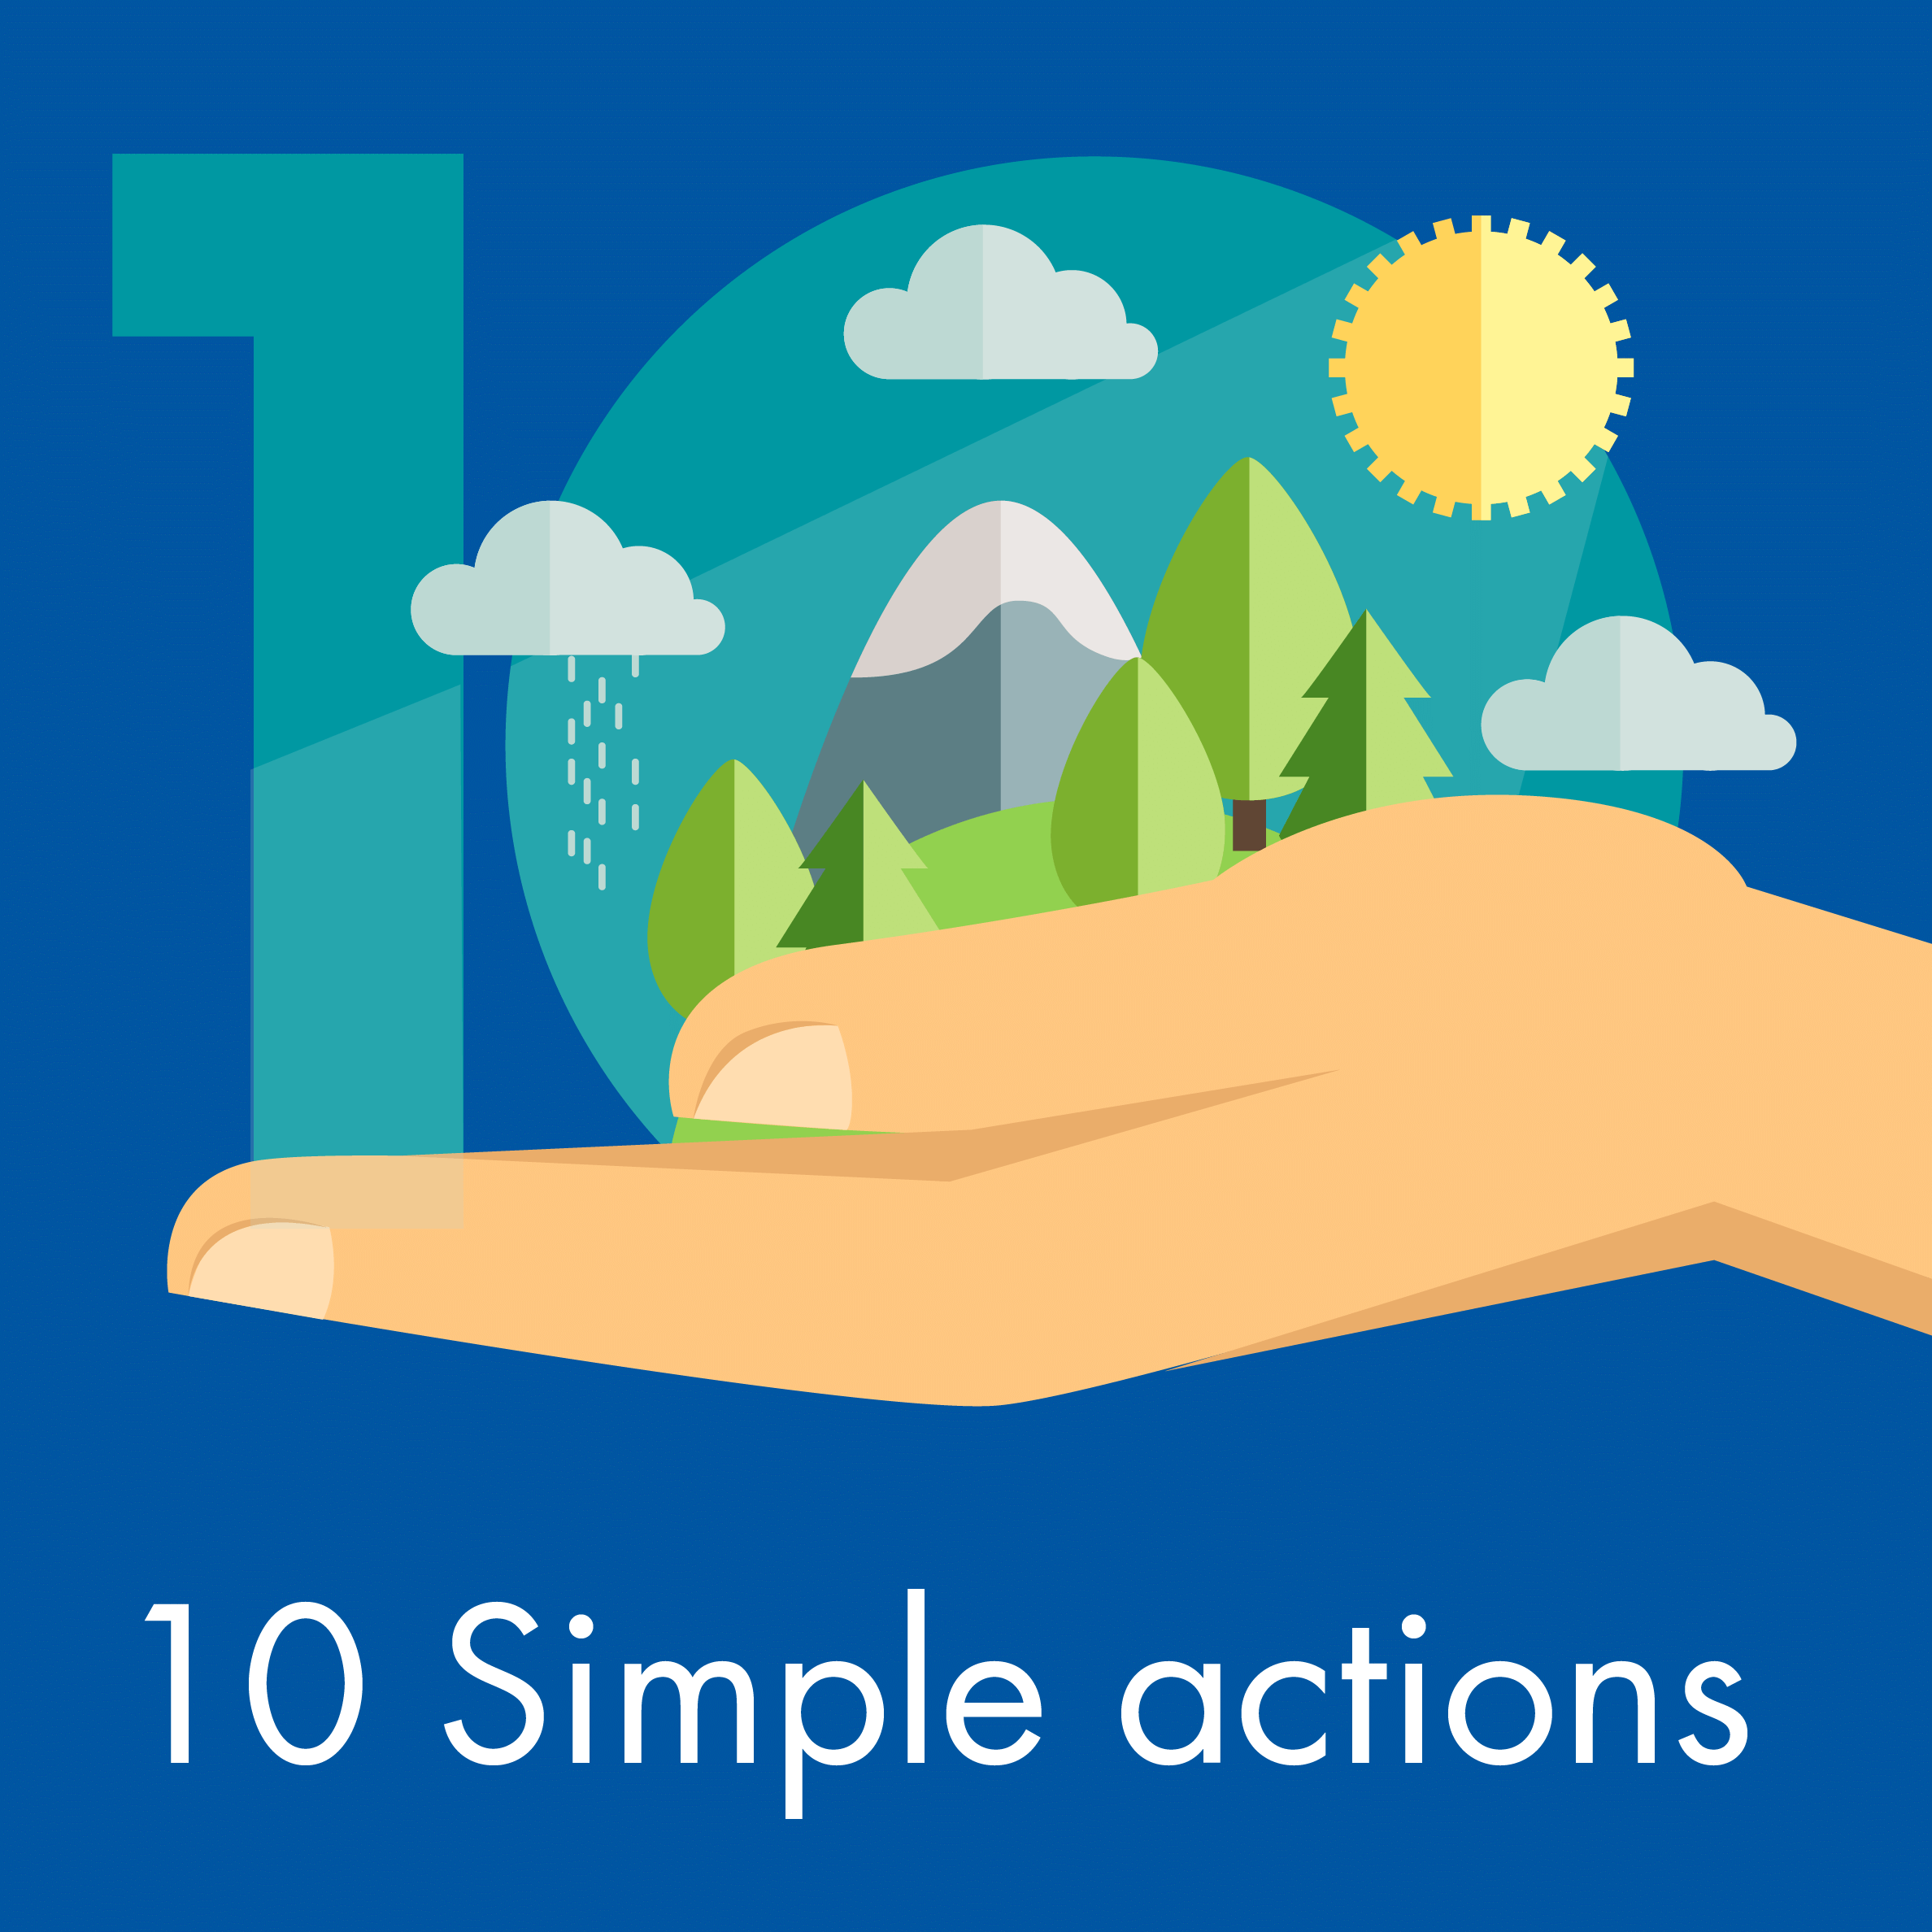 10 Simple actions